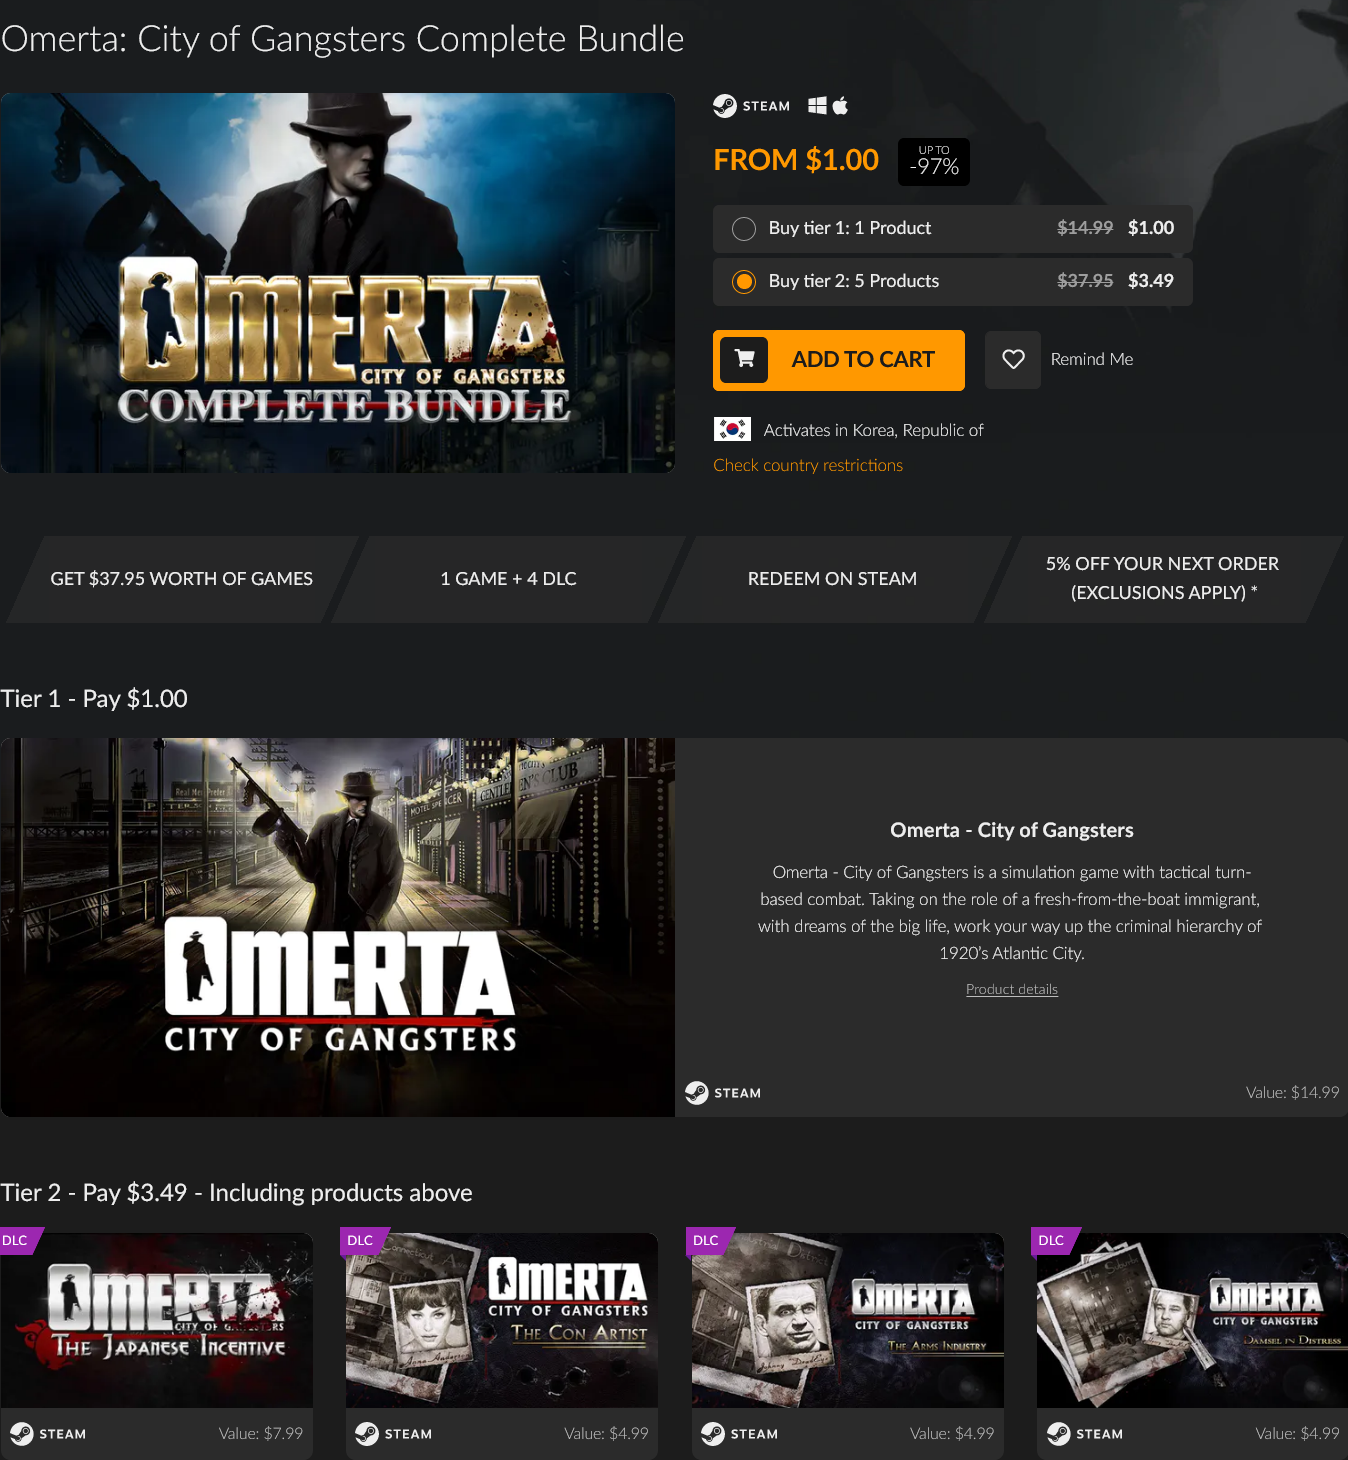 Screenshot_2021-04-16 Omerta City of Gangsters Complete Bundle Steam Game Bundle Fanatical.png